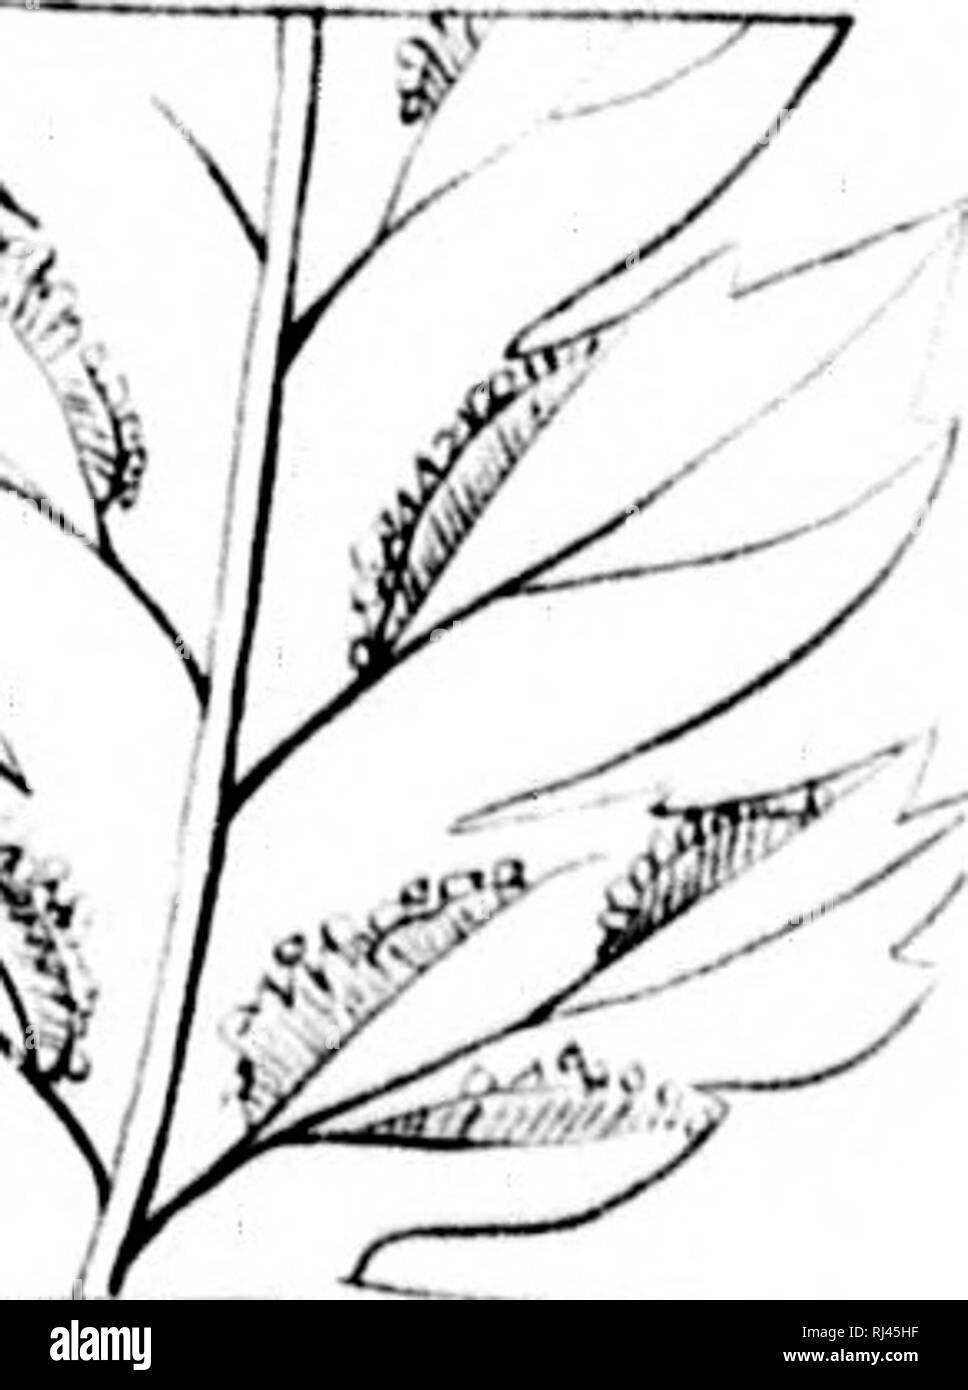 . The ferns of North America [microform] : colored figures and descriptions, with synonymy and geographical distribution, of the ferns (including the ophioglassaceae) of the United States of America and the British North American possessions. Ferns; Fougères. Pkle I,/0 I^S*^ ;'5:--e.; (^ M. Am.jui.ri,: A Zi .iu So. Please note that these images are extracted from scanned page images that may have been digitally enhanced for readability - coloration and appearance of these illustrations may not perfectly resemble the original work.. Eaton, Daniel Cady, 1834-1895. Salem [Mass. ] : S. E. Cassi Stock Photo